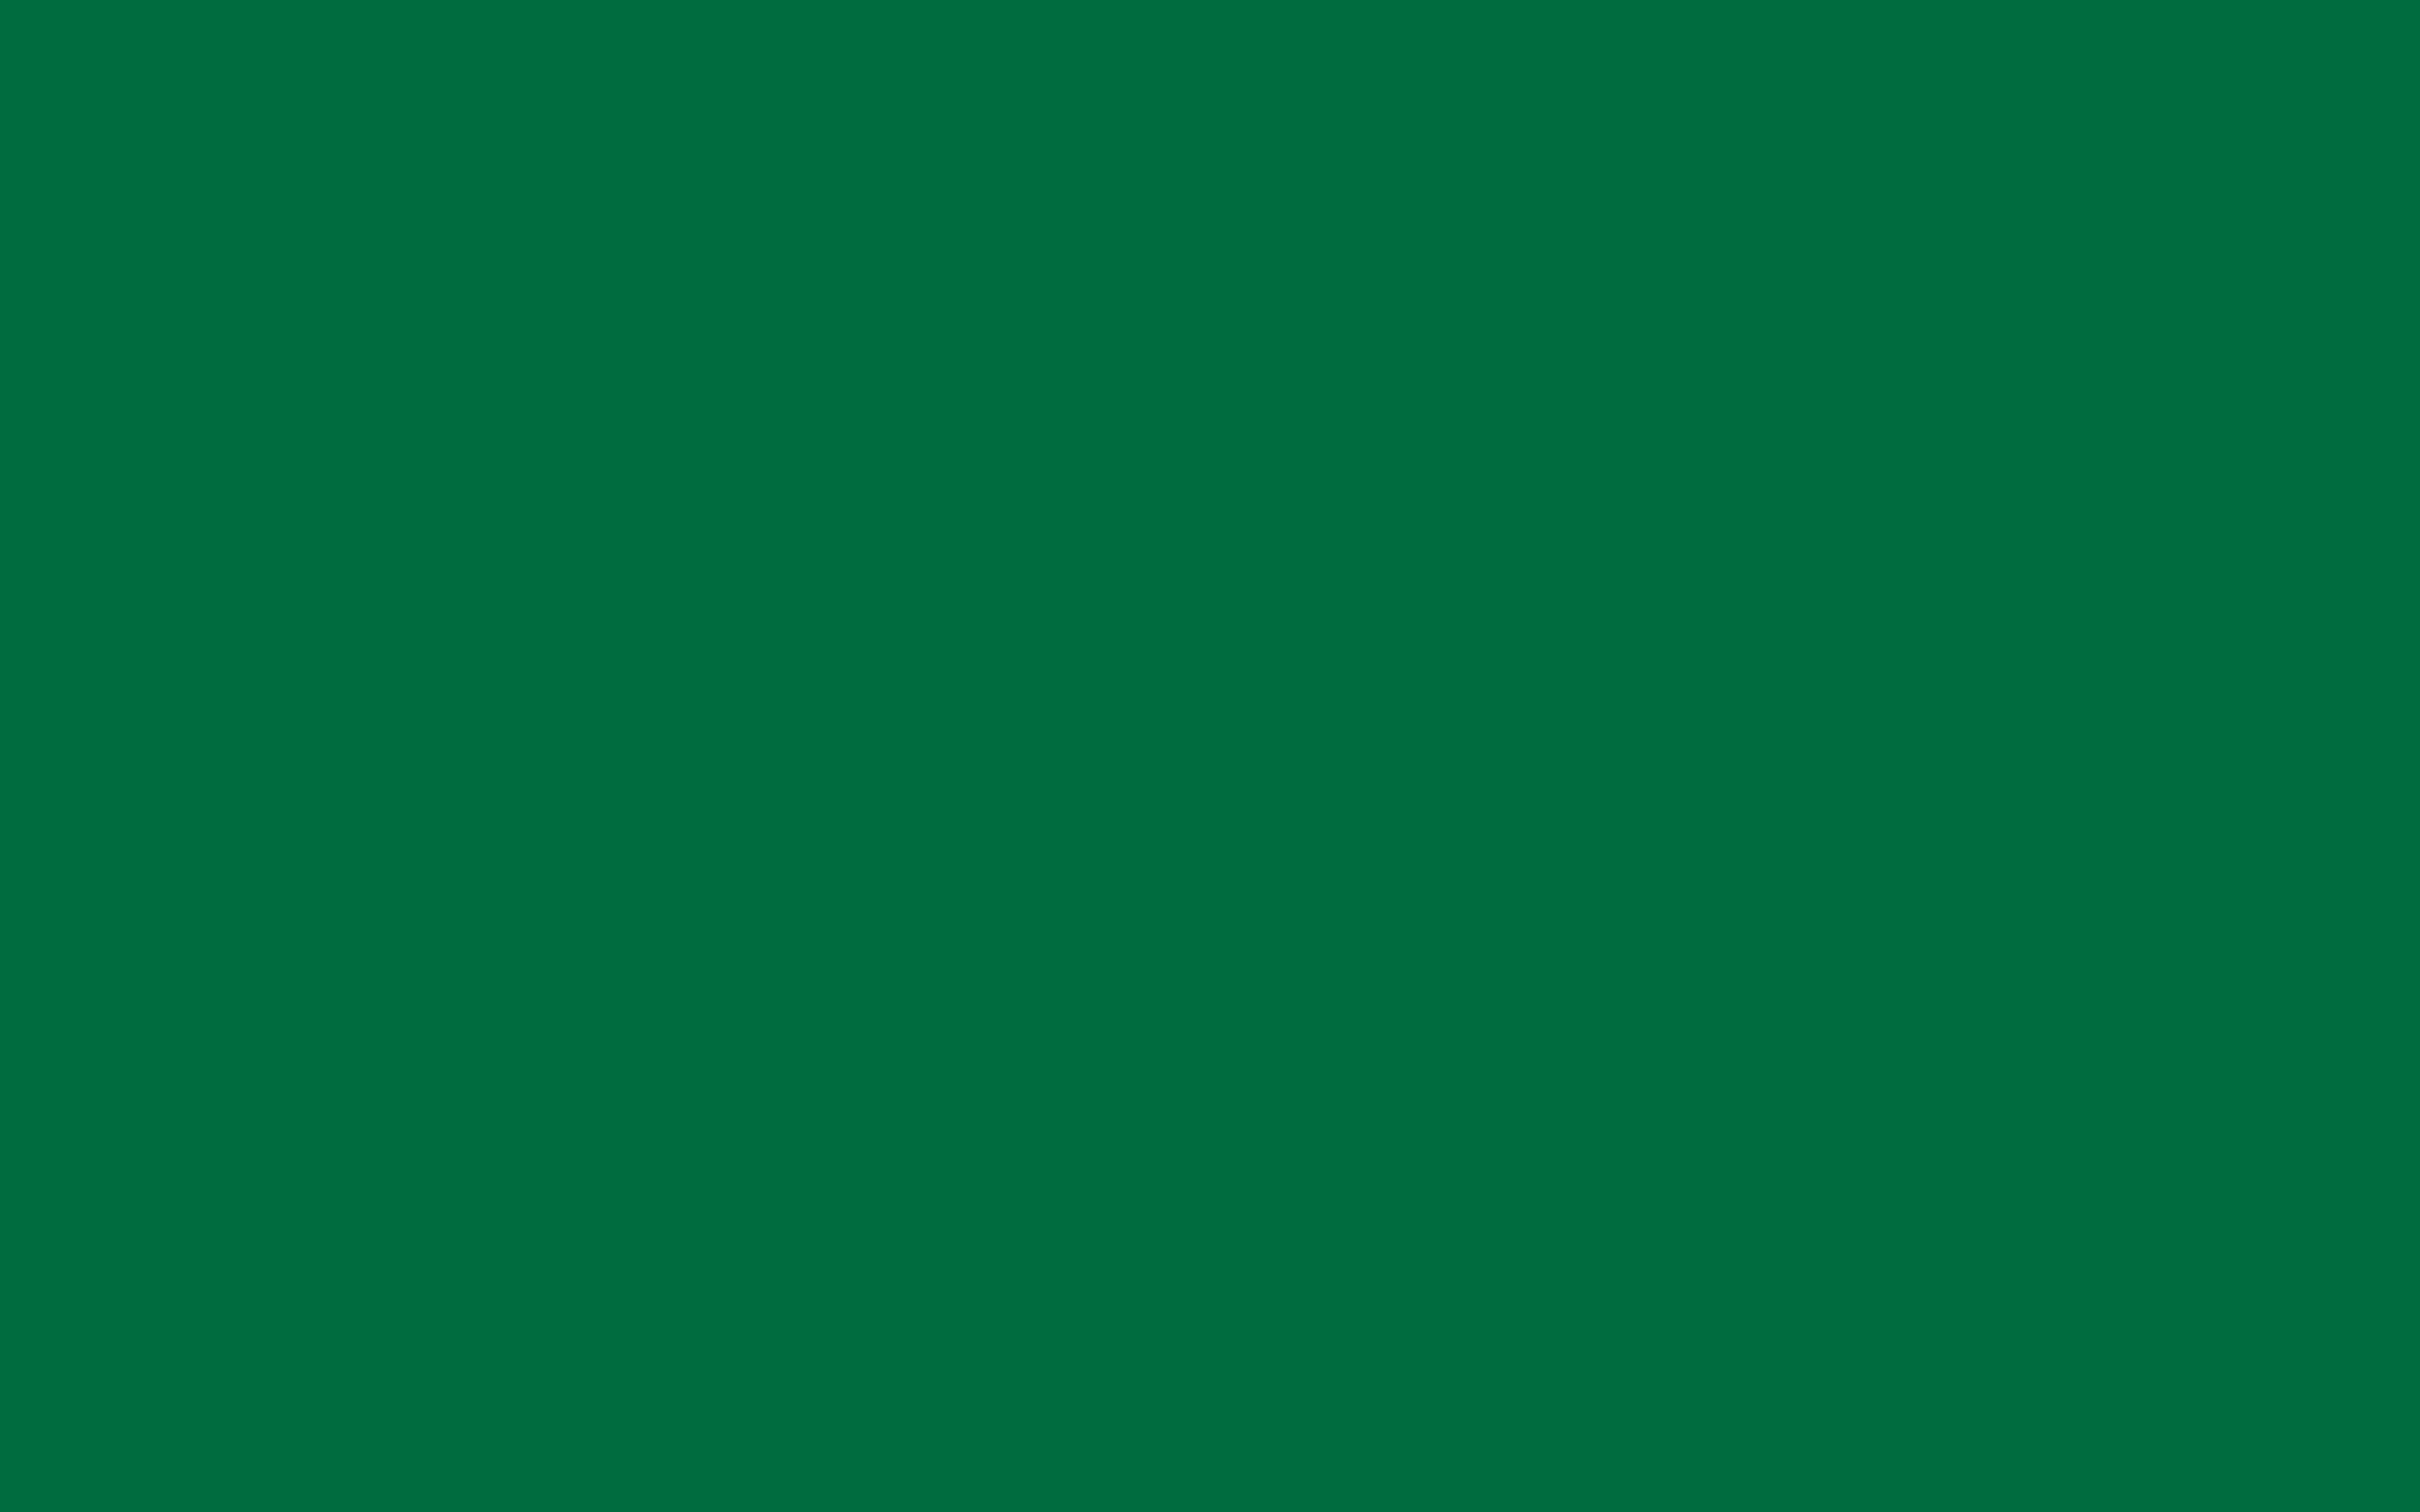 2560x1600 Cadmium Green Solid Color Background